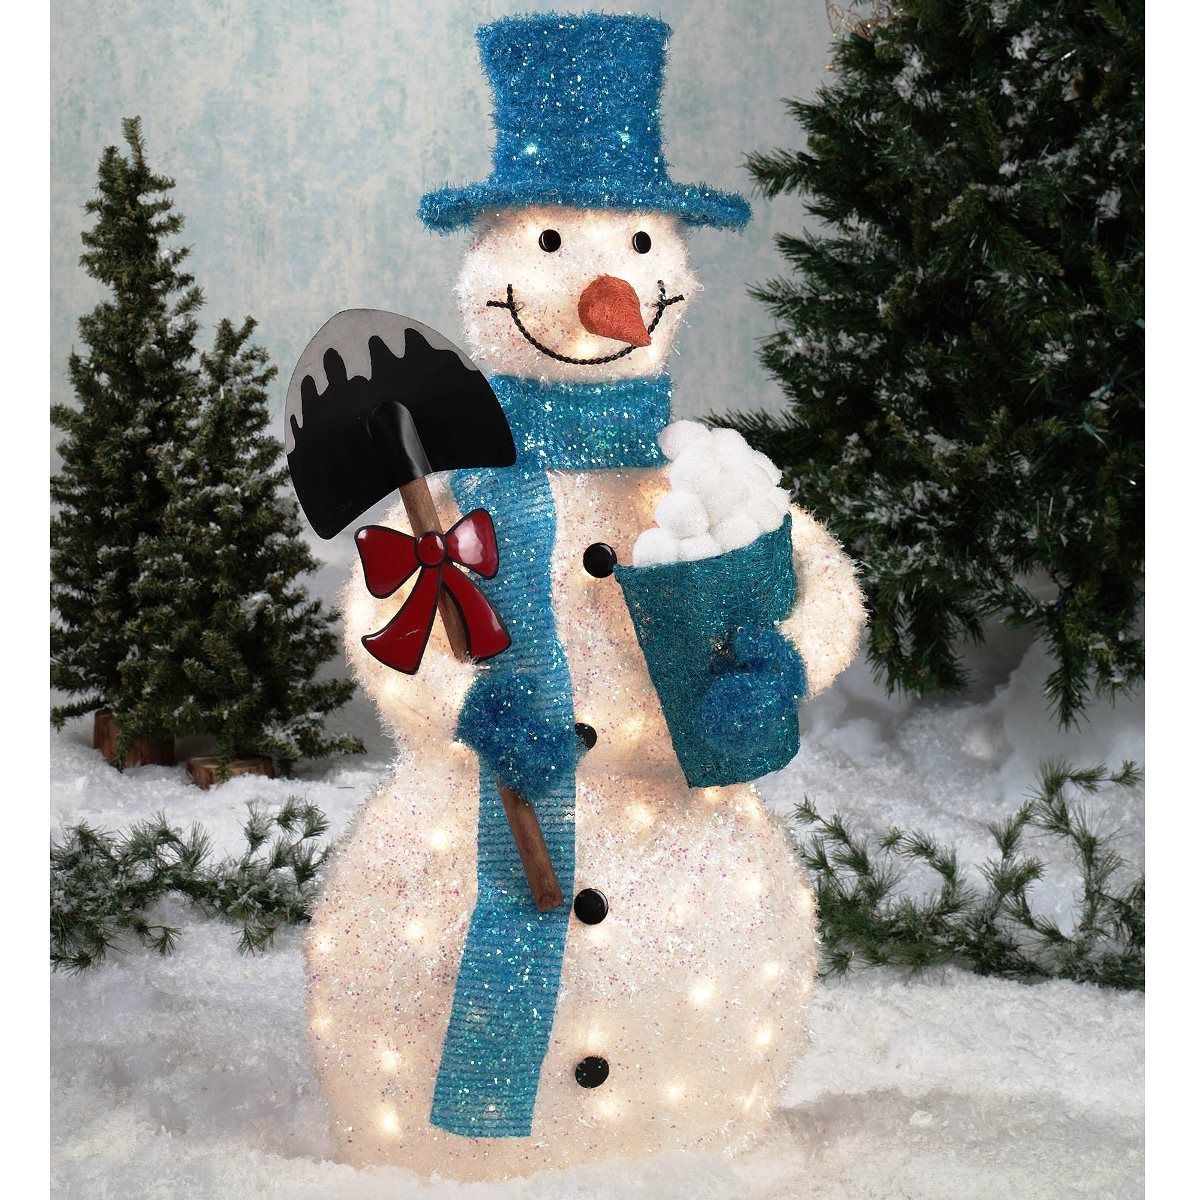 Pics For > Real Snowman Ideas | Snazzy & Silly Snowmen | Pinterest ...